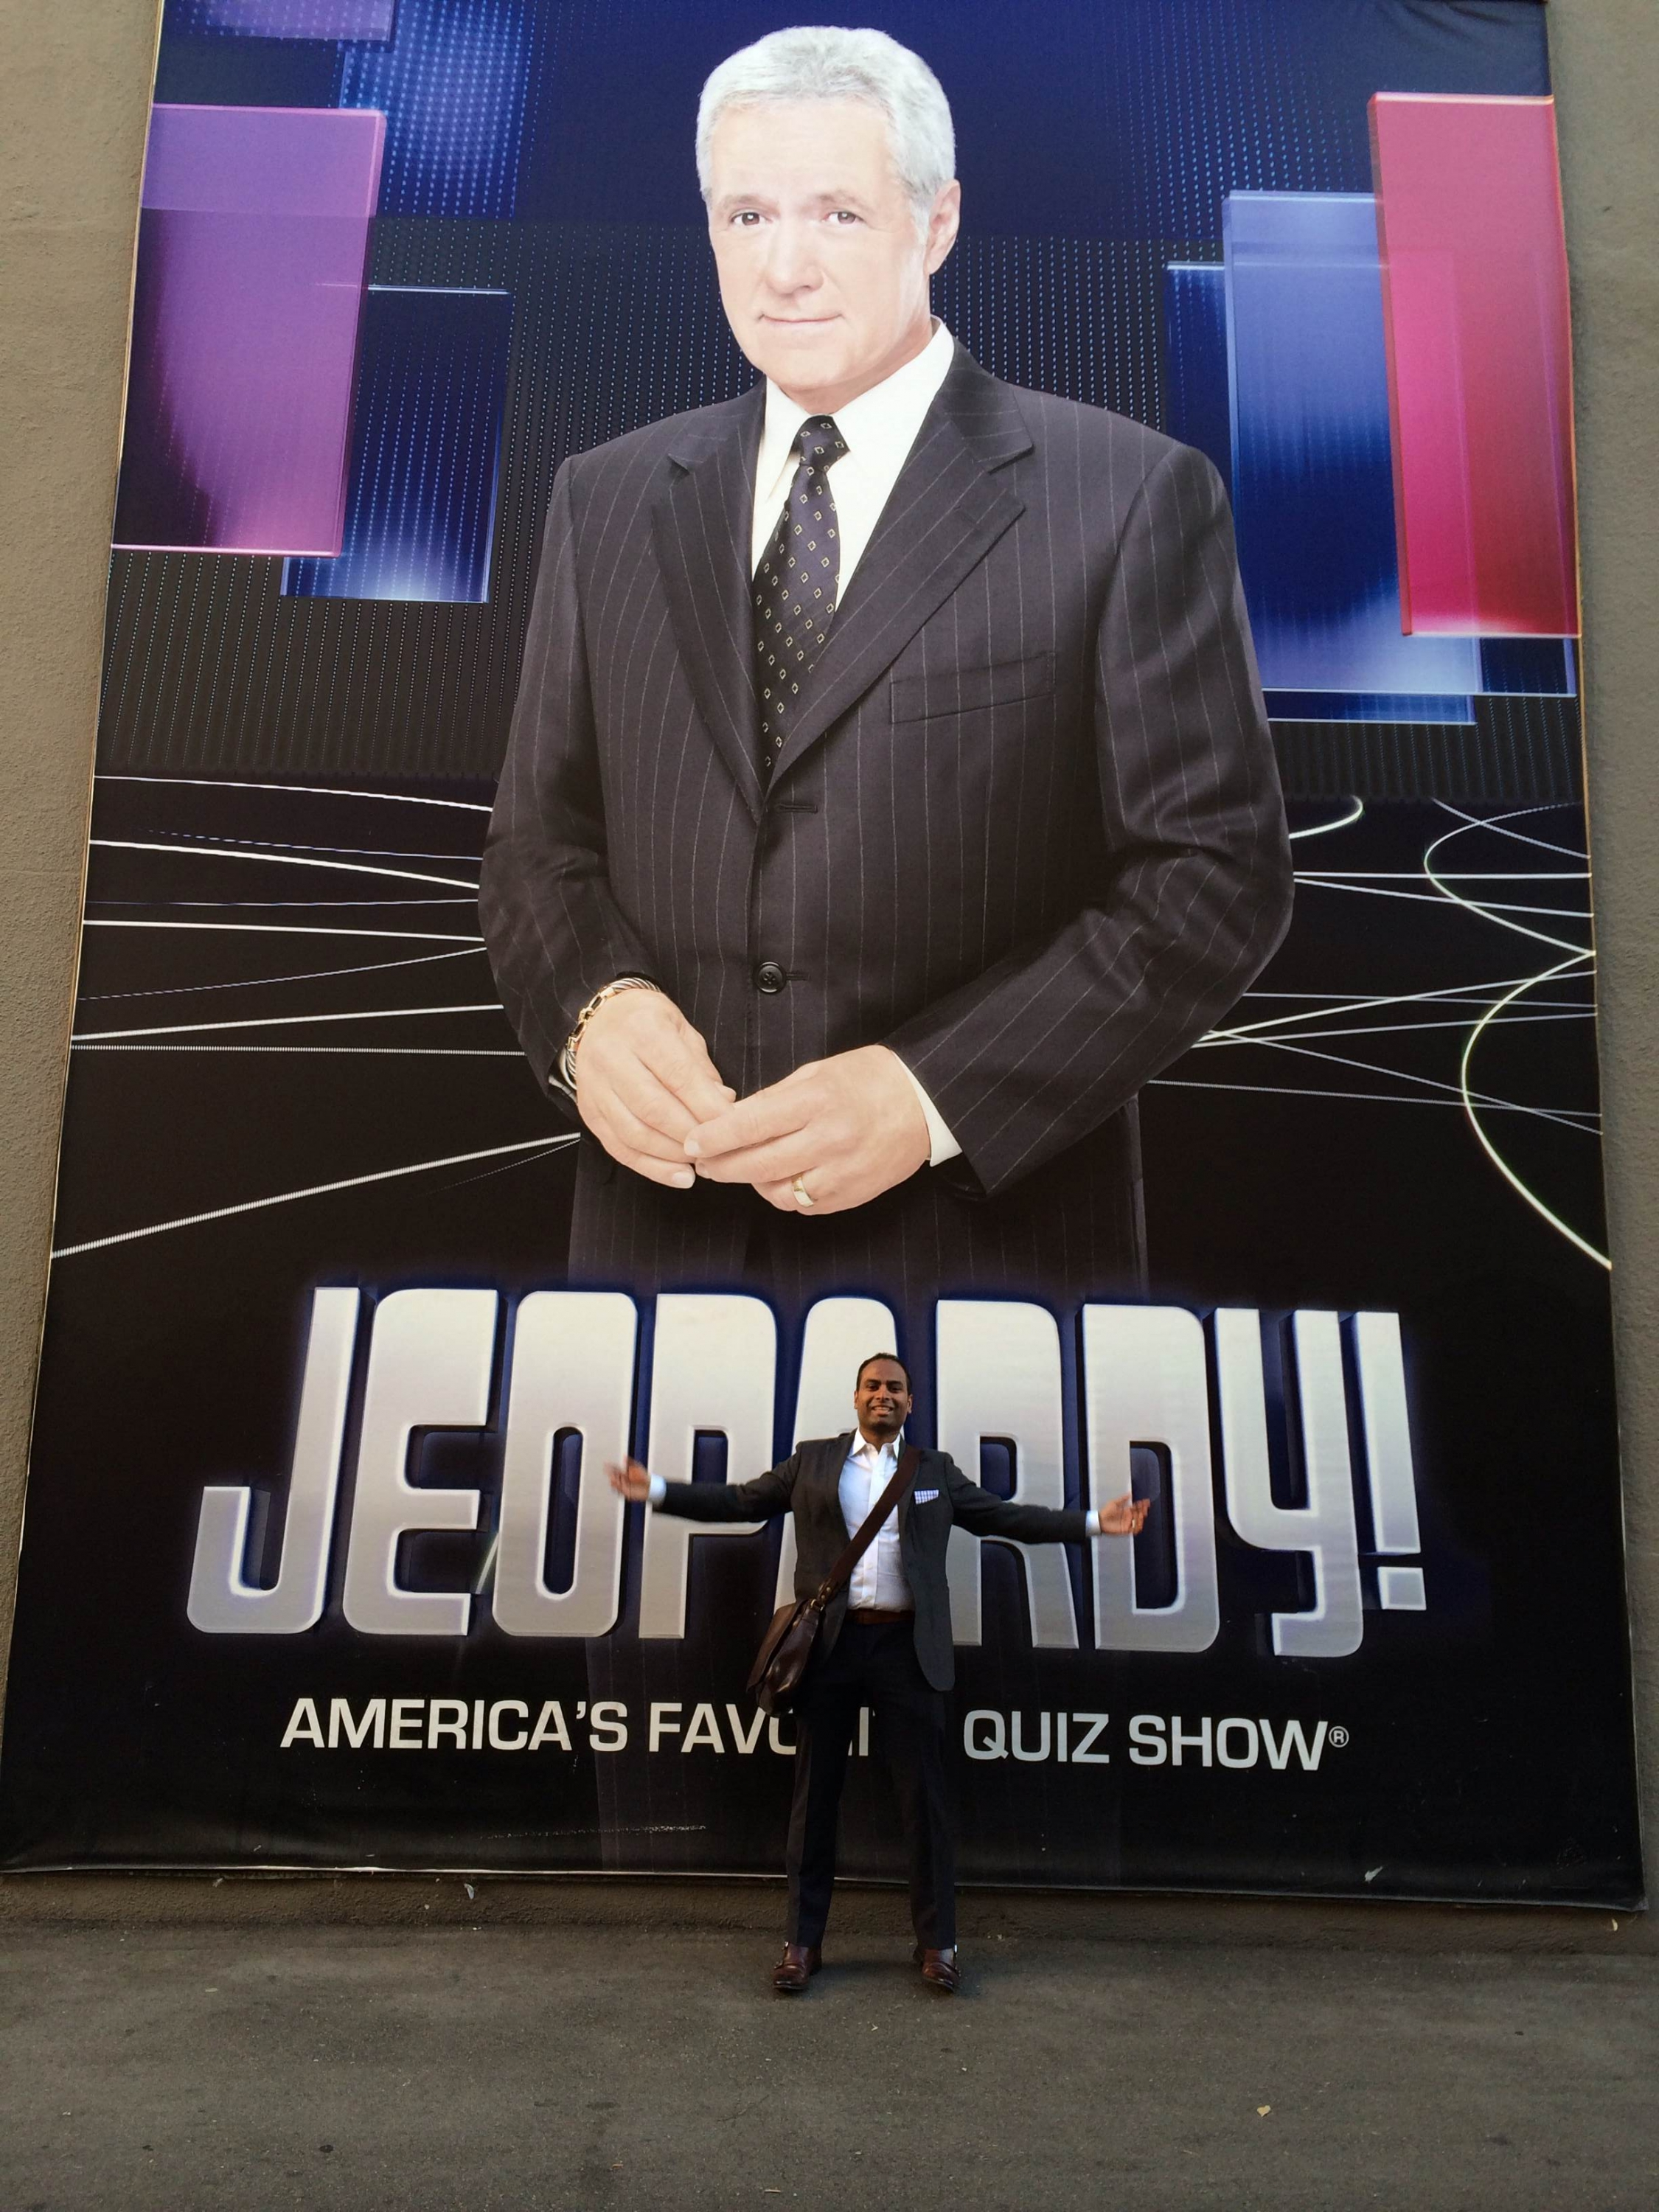 Dinu Nesan standing in front of Jeopardy! poster.